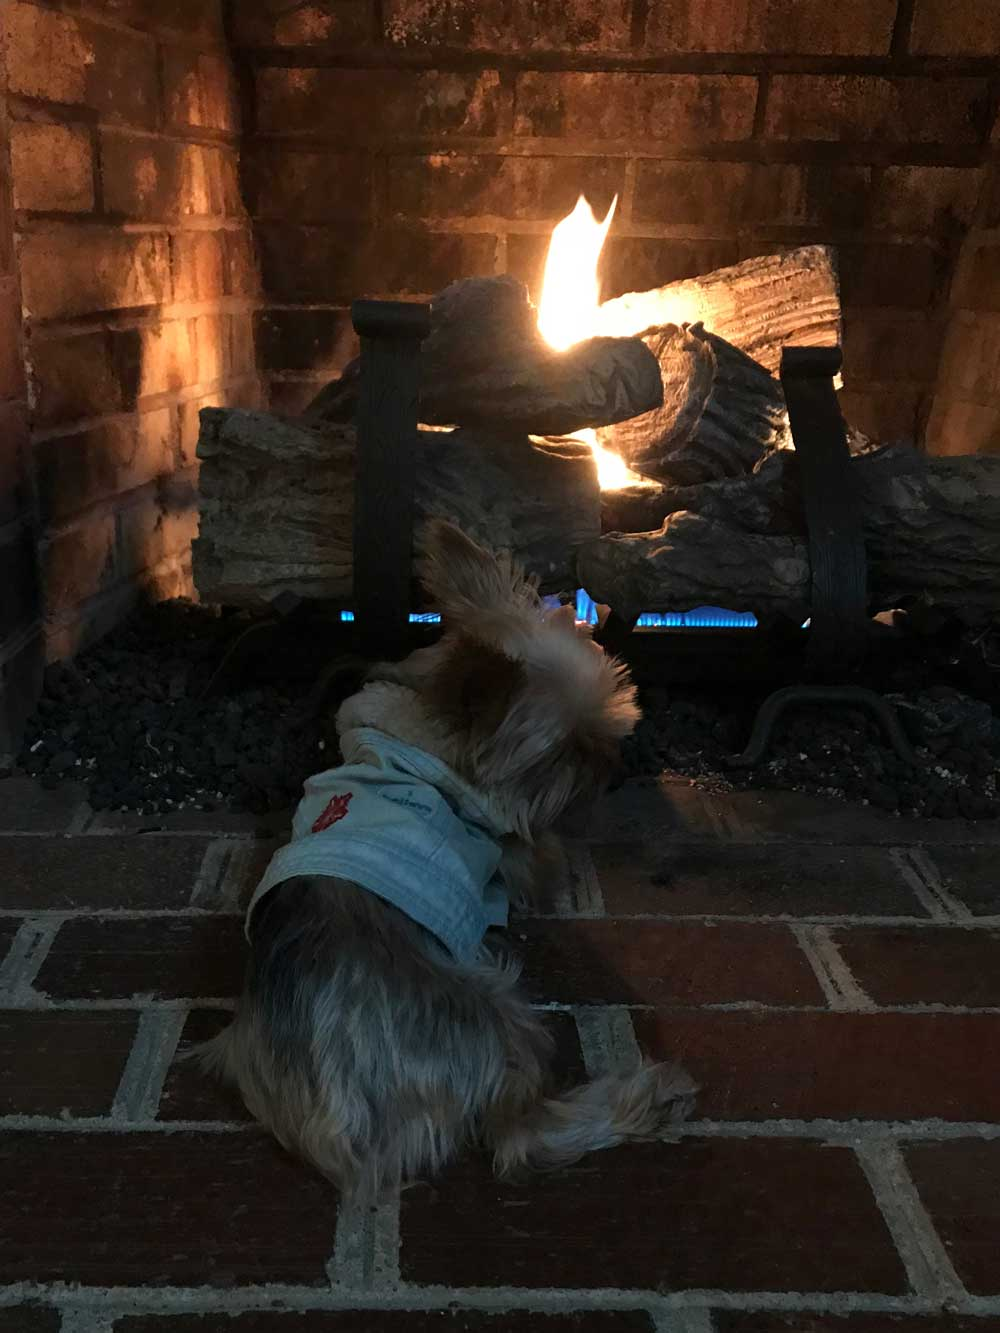 This fire is cool, but I cannot appreciate Lou's cuteness fully this way. I can barely see her